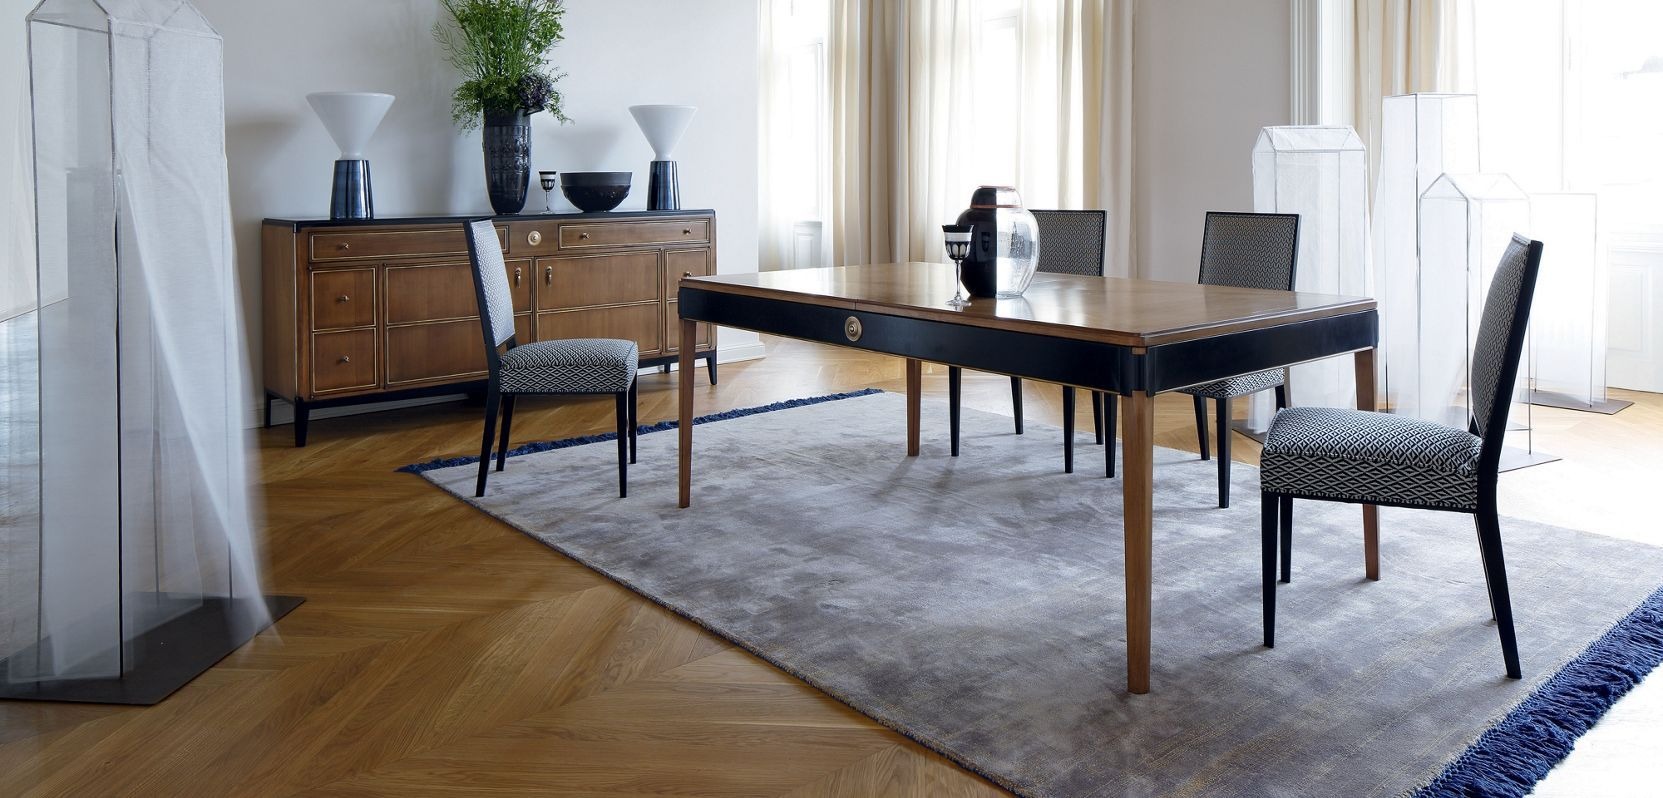 Roche Bobois - CLARIDGE Dining table | Dining Room | Pinterest